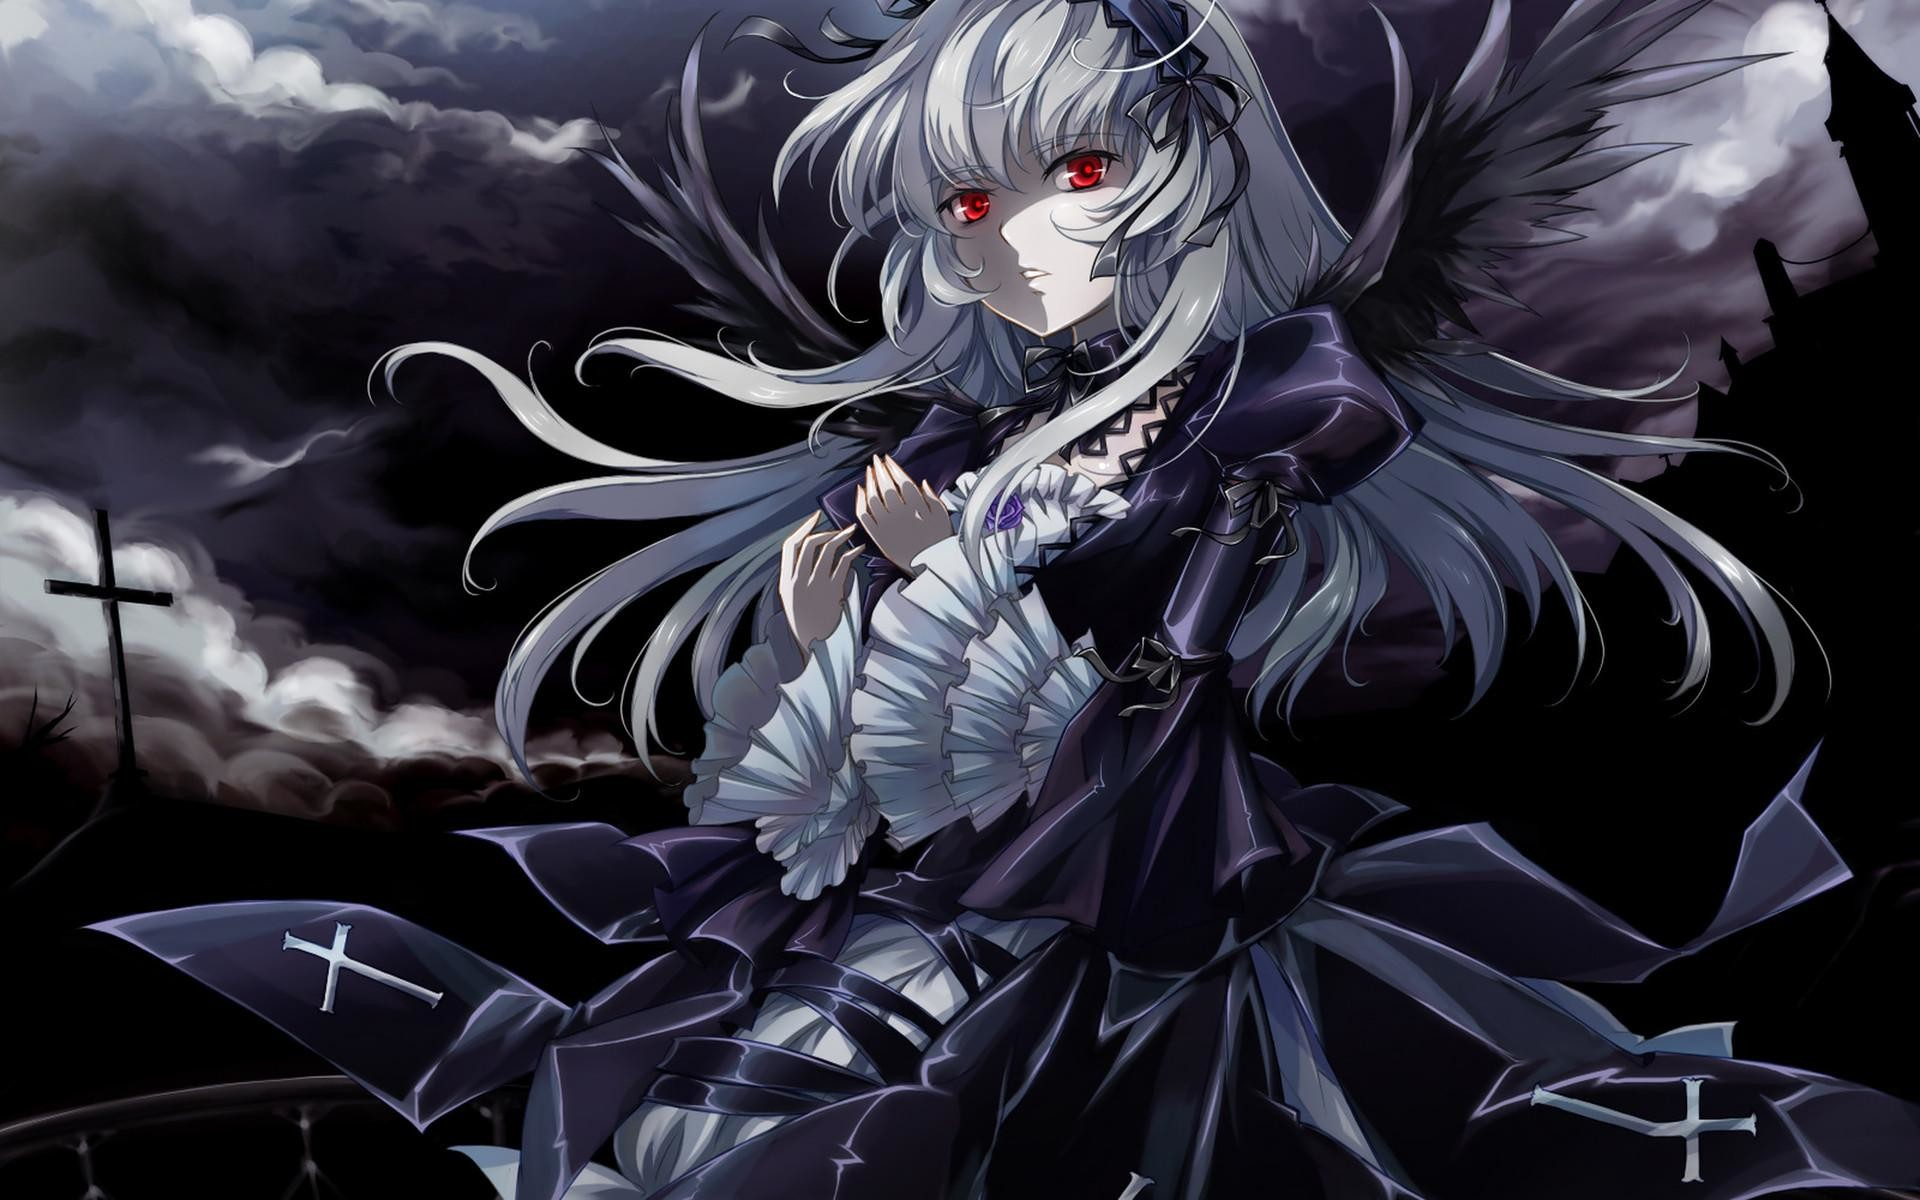 1920x1200 Samael Girl Art Hair Word Epic Anime Wallpaper For Iphone | Happy .